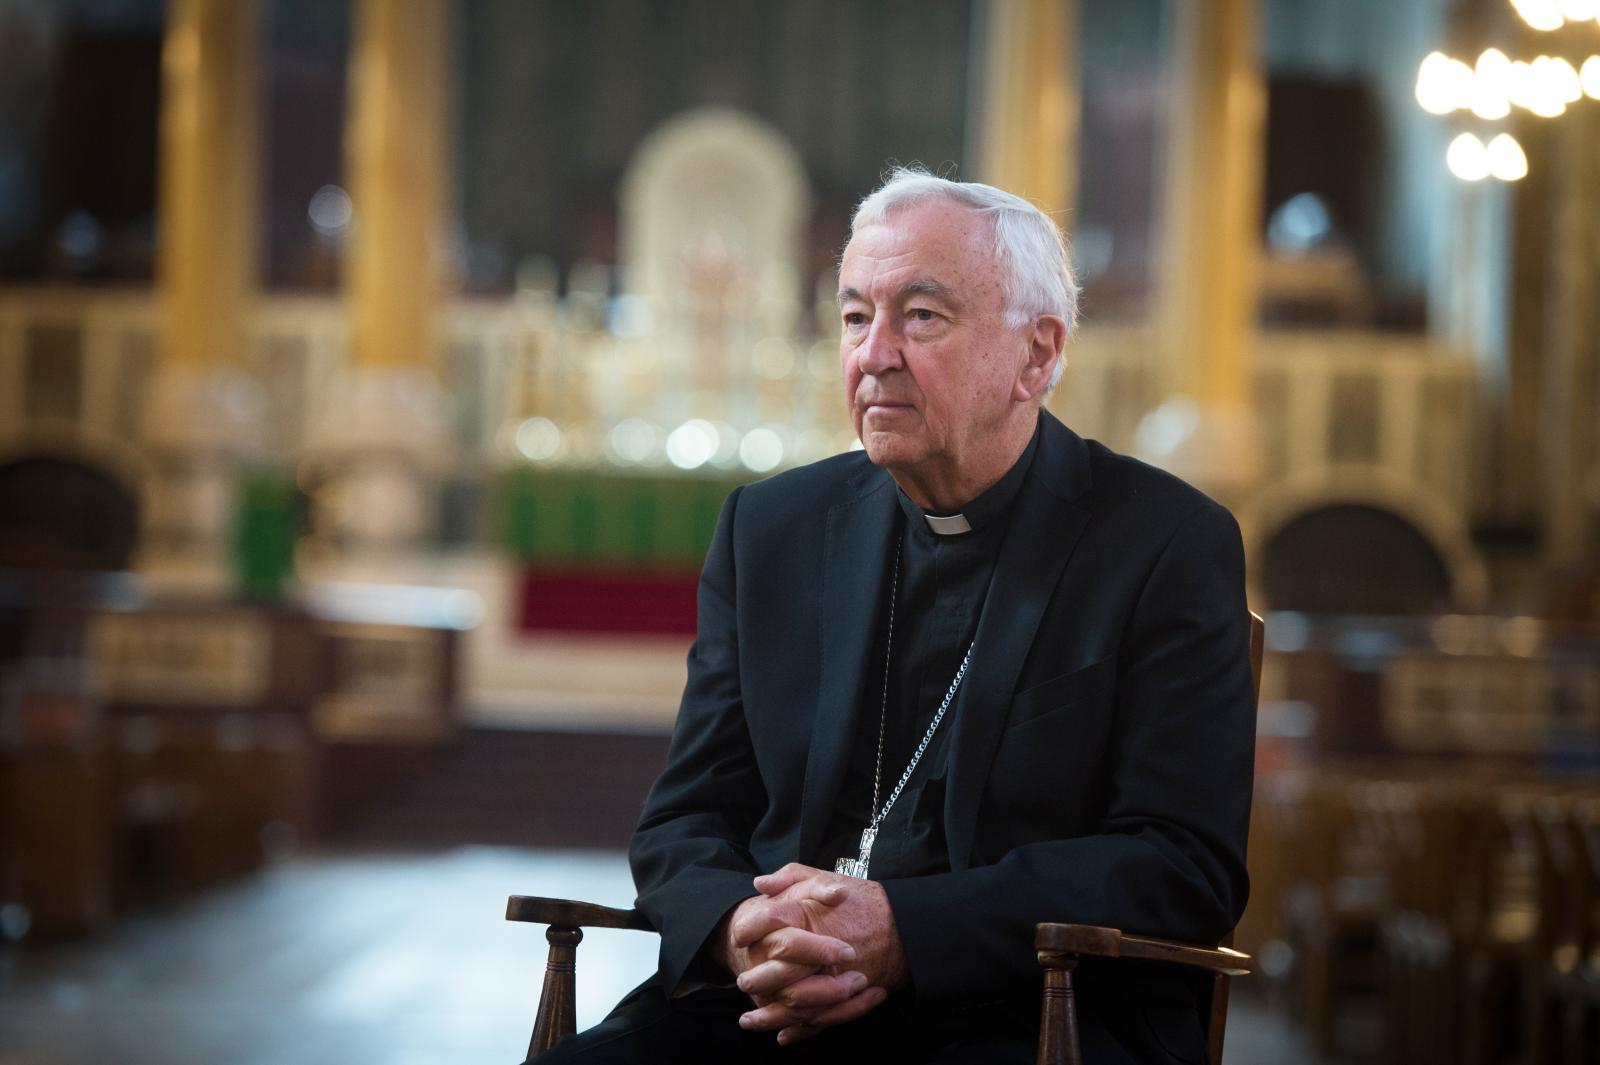 Cardinal on contribution of Catholic teaching to society - Diocese of Westminster